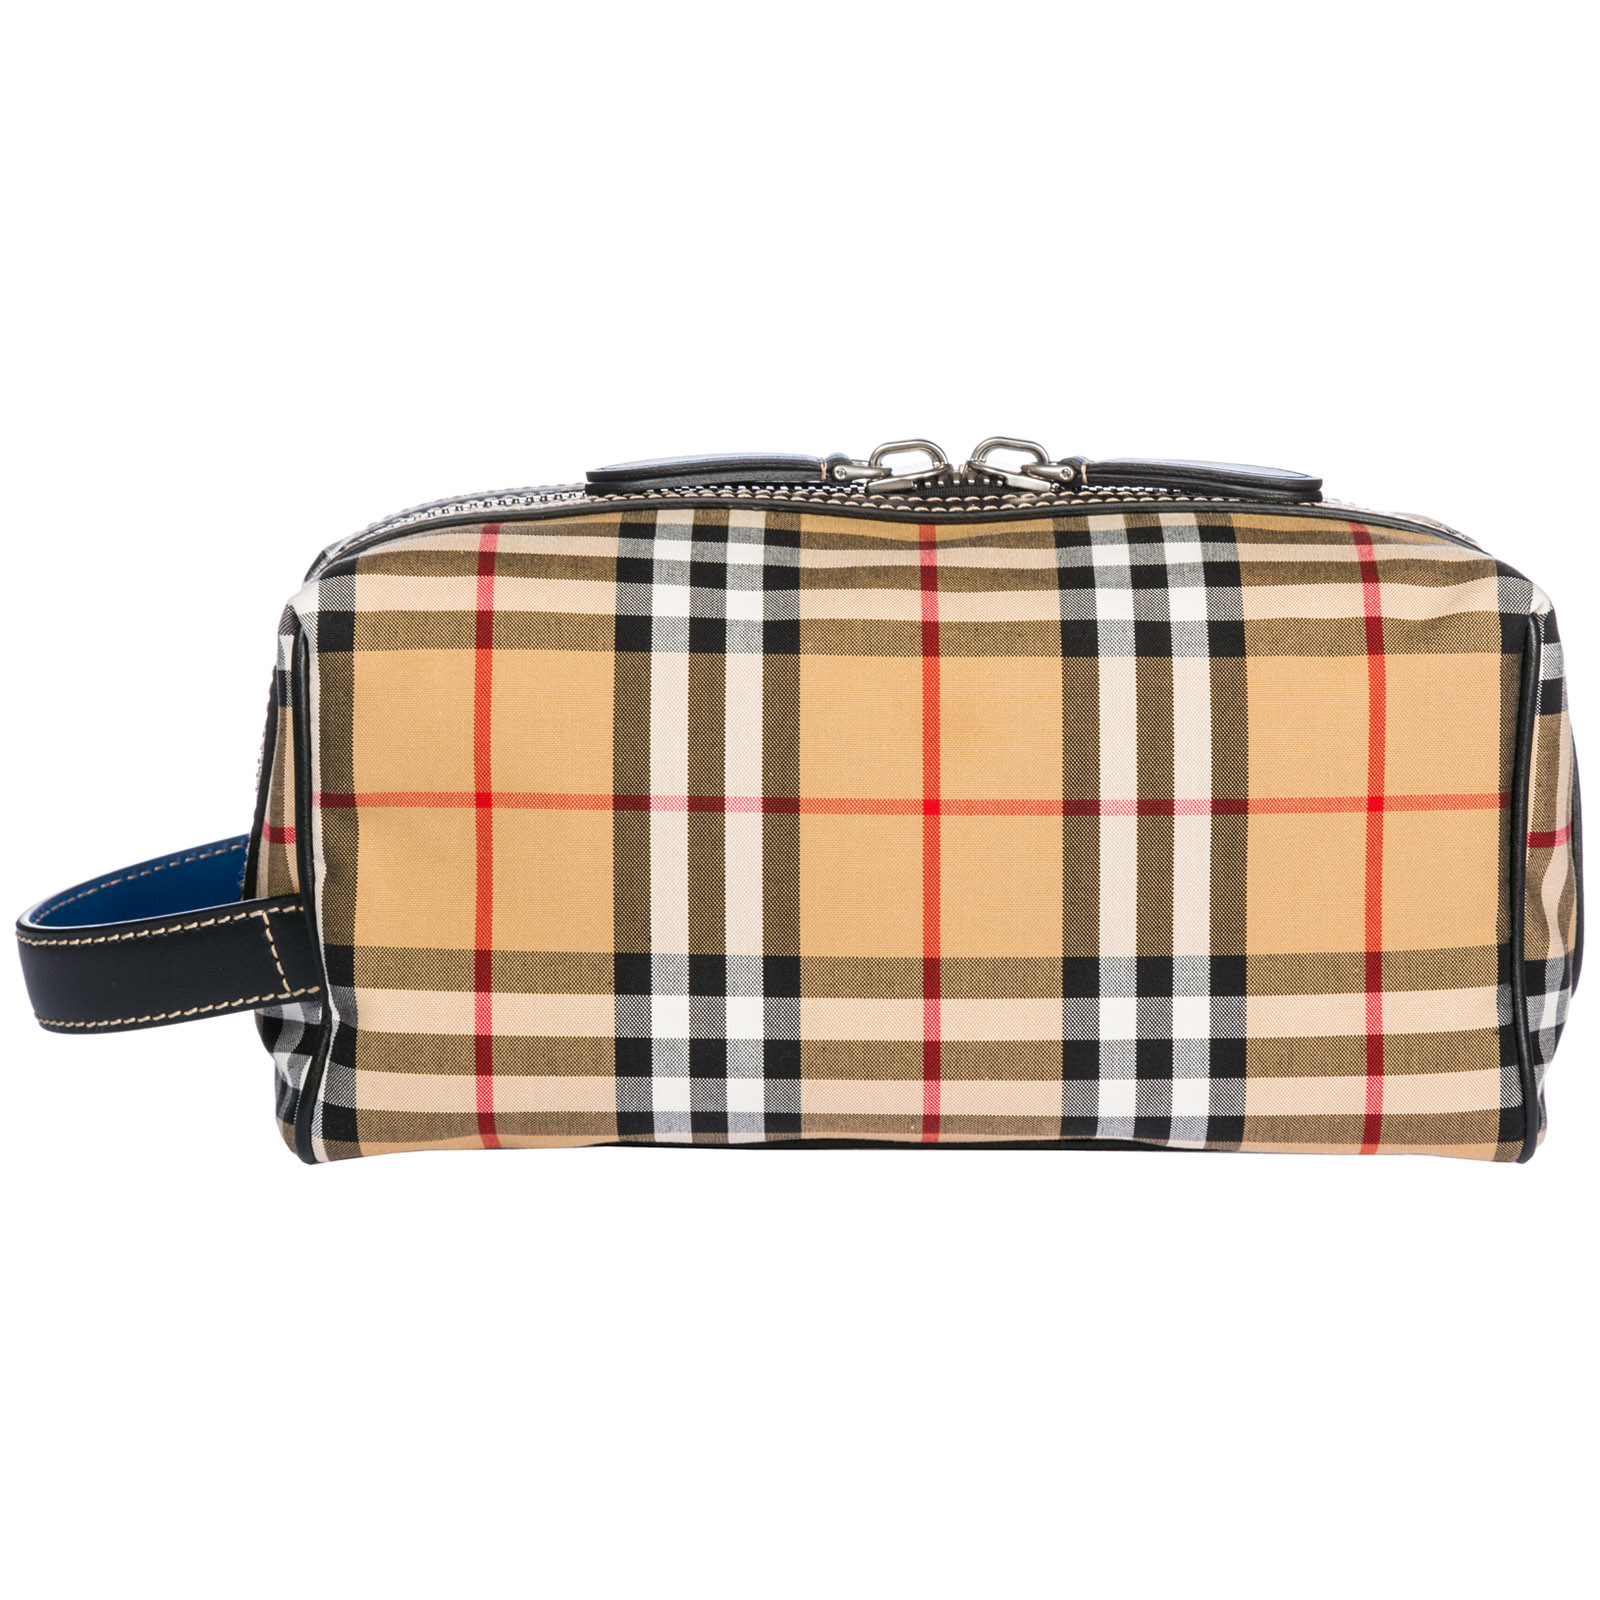 3fb3114fd780 Burberry Men s travel toiletries beauty case wash bag